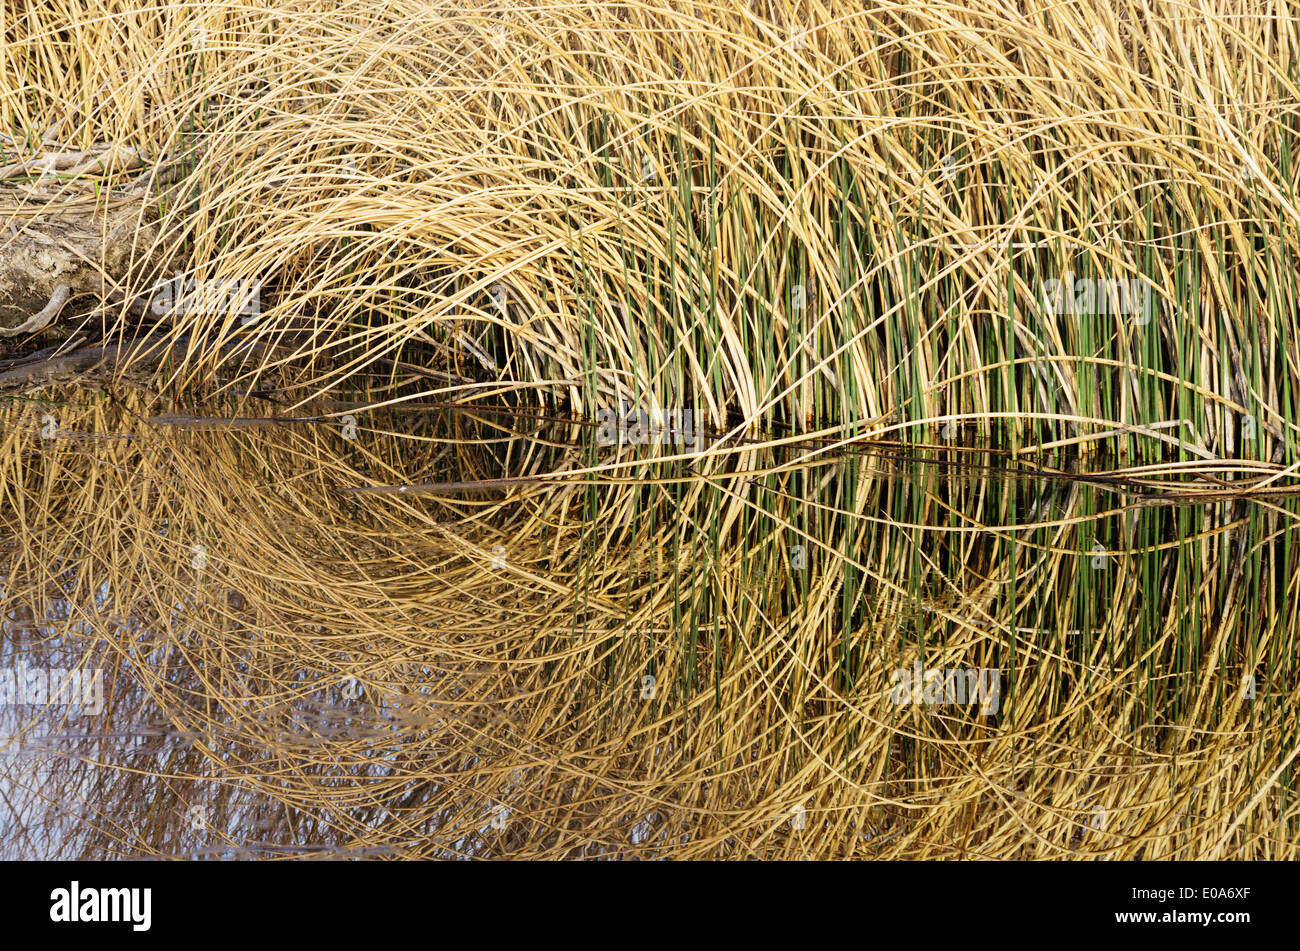 reflections of tan and green reeds in still water forming lines and curves - Stock Image